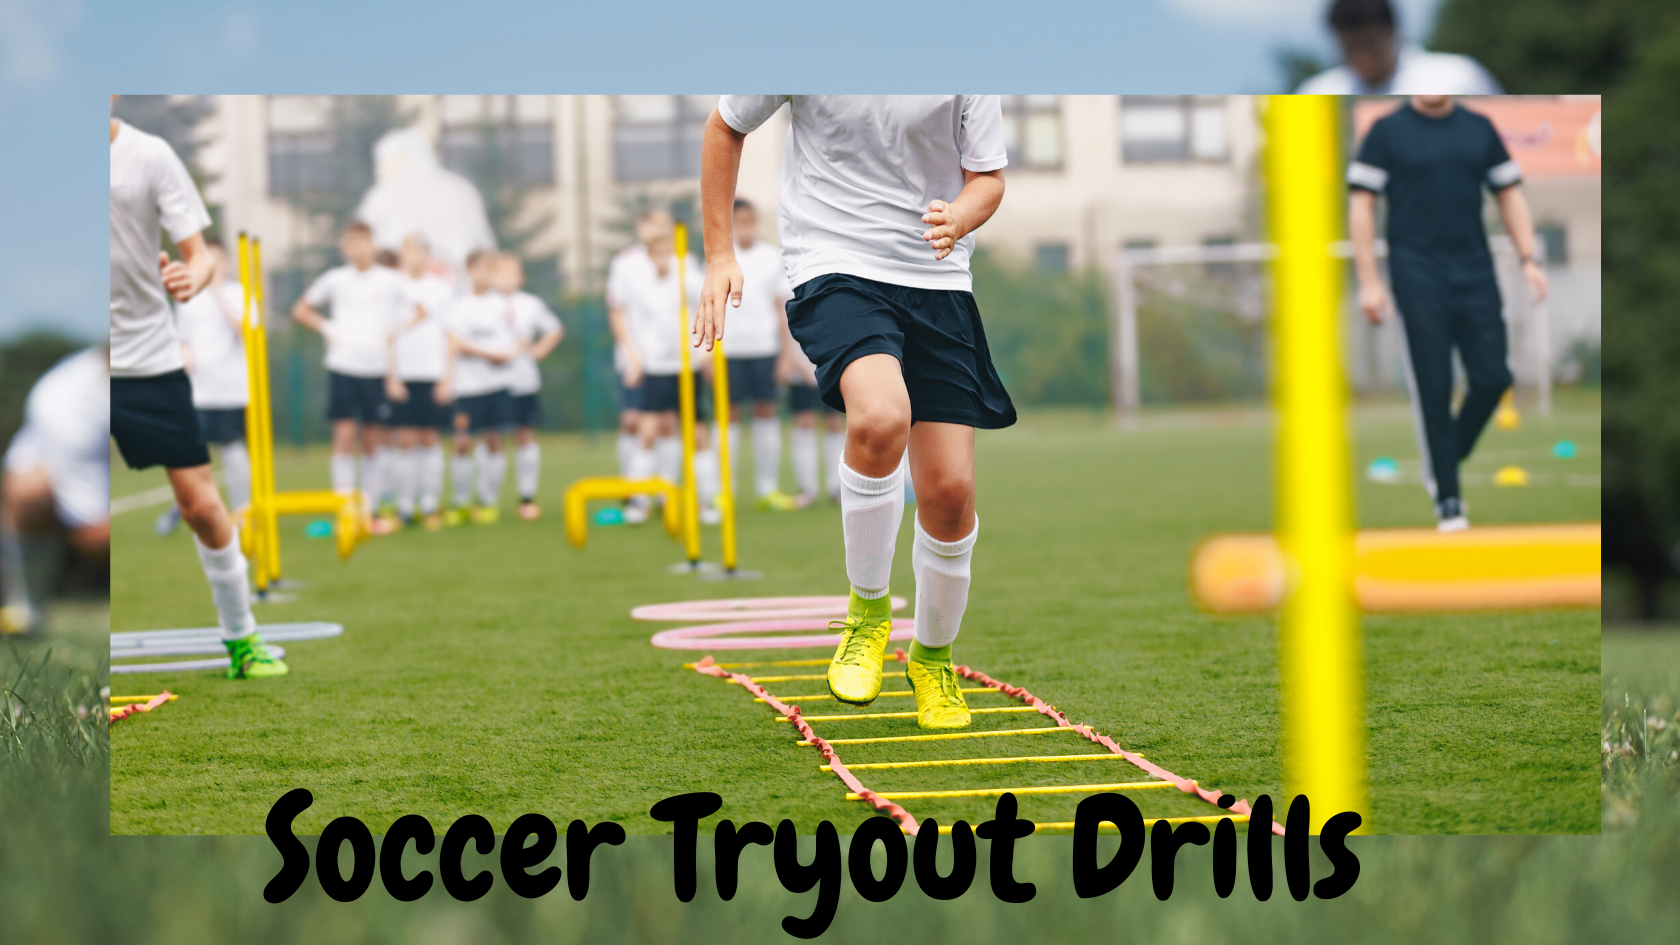 Top Soccer Tryout Drills